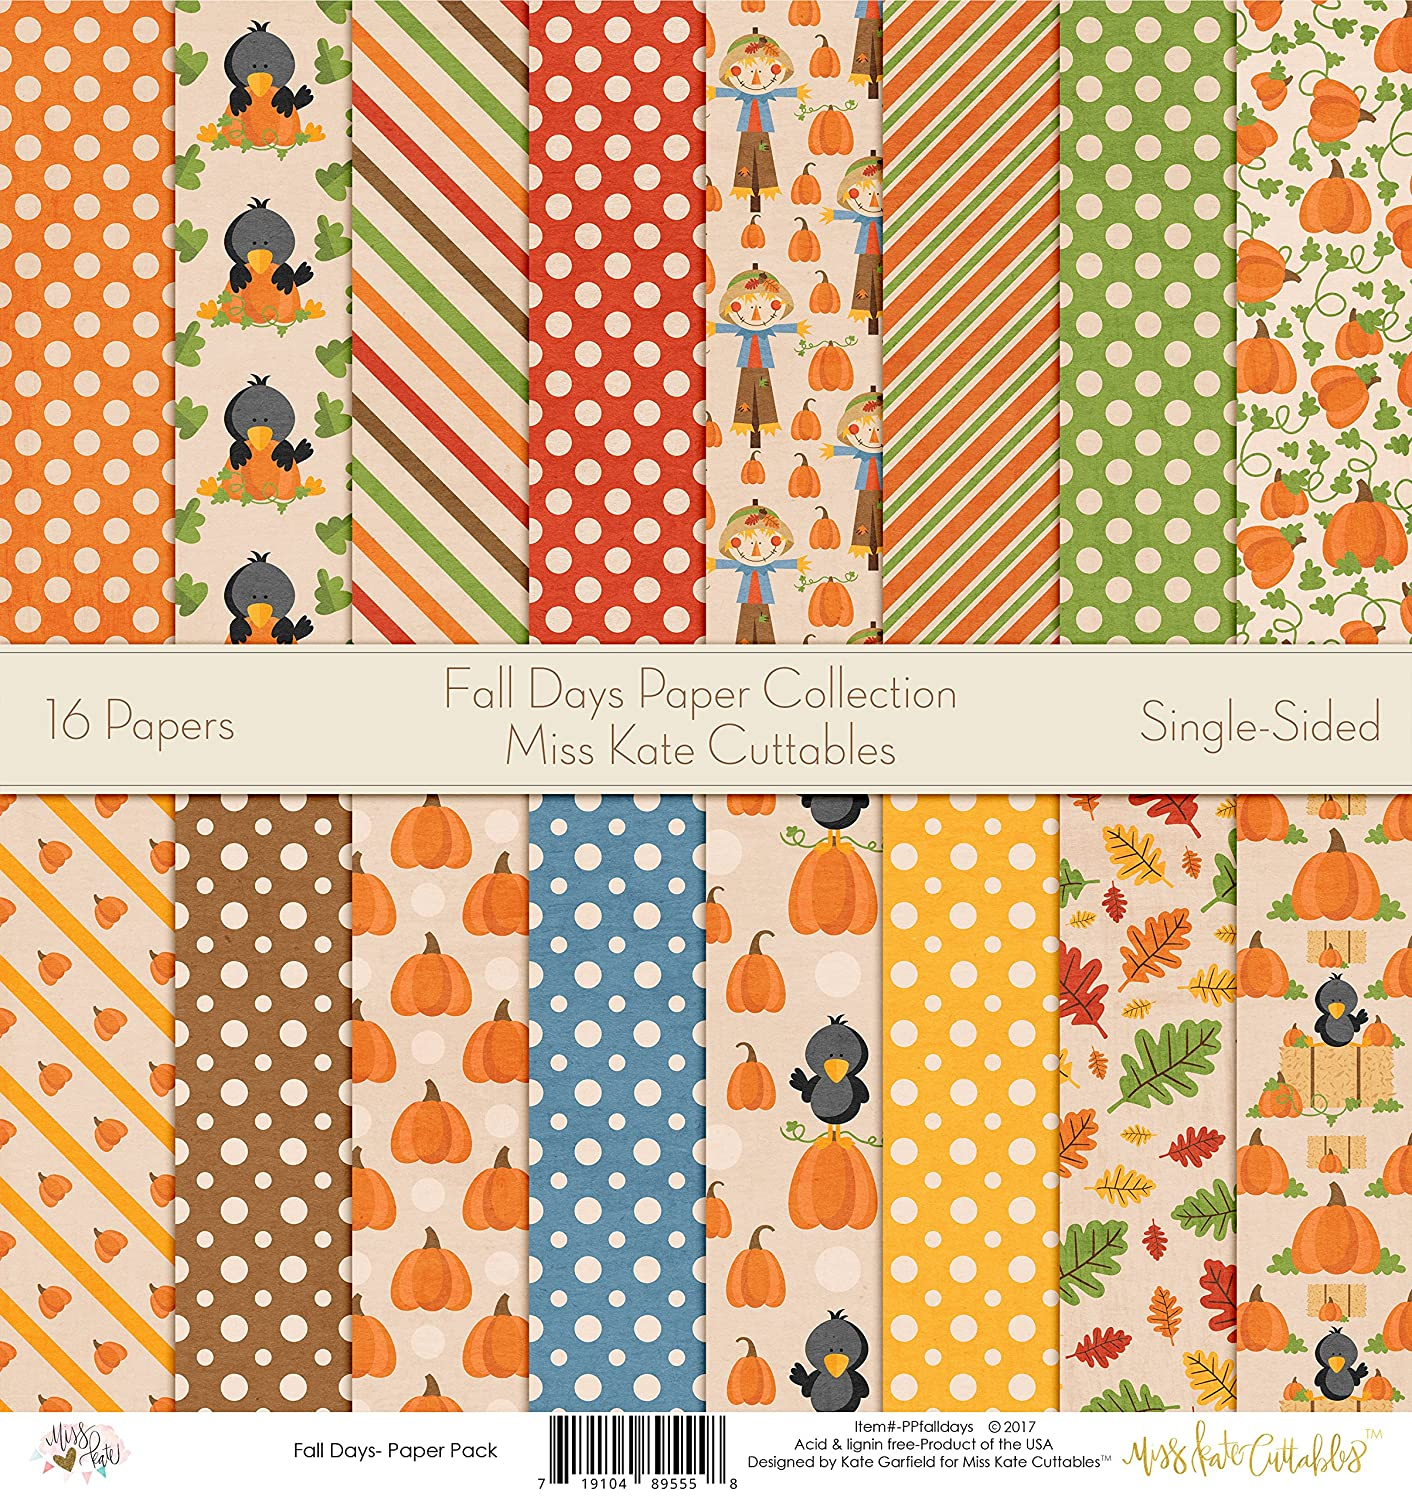 Pattern Paper Pack - Fall Days - Scrapbook Card Stock Single-Sided 12x12 Collection Includes 16 Sheets - by Miss Kate Cuttables